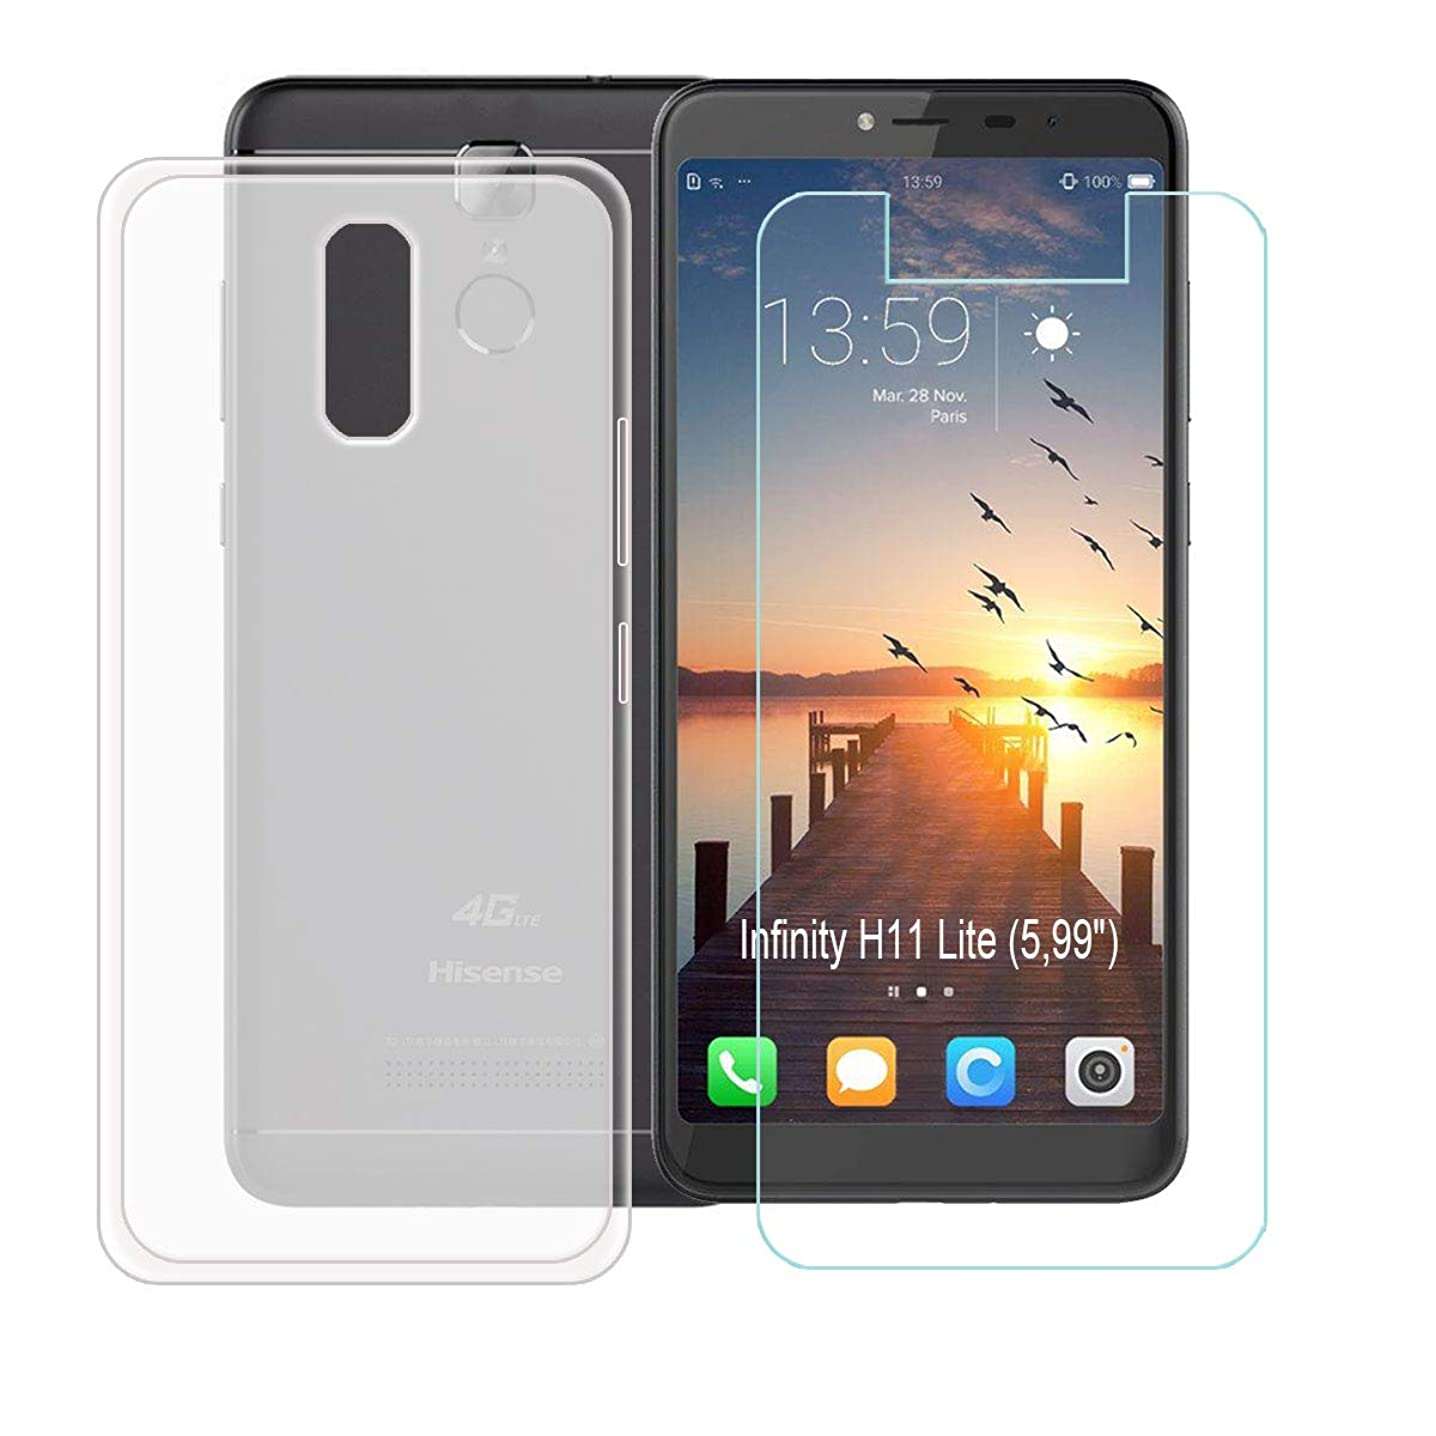 SZJCKJ Translucent Case + HD Screen Protector for Hisense Infinity H11 Lite (5,99